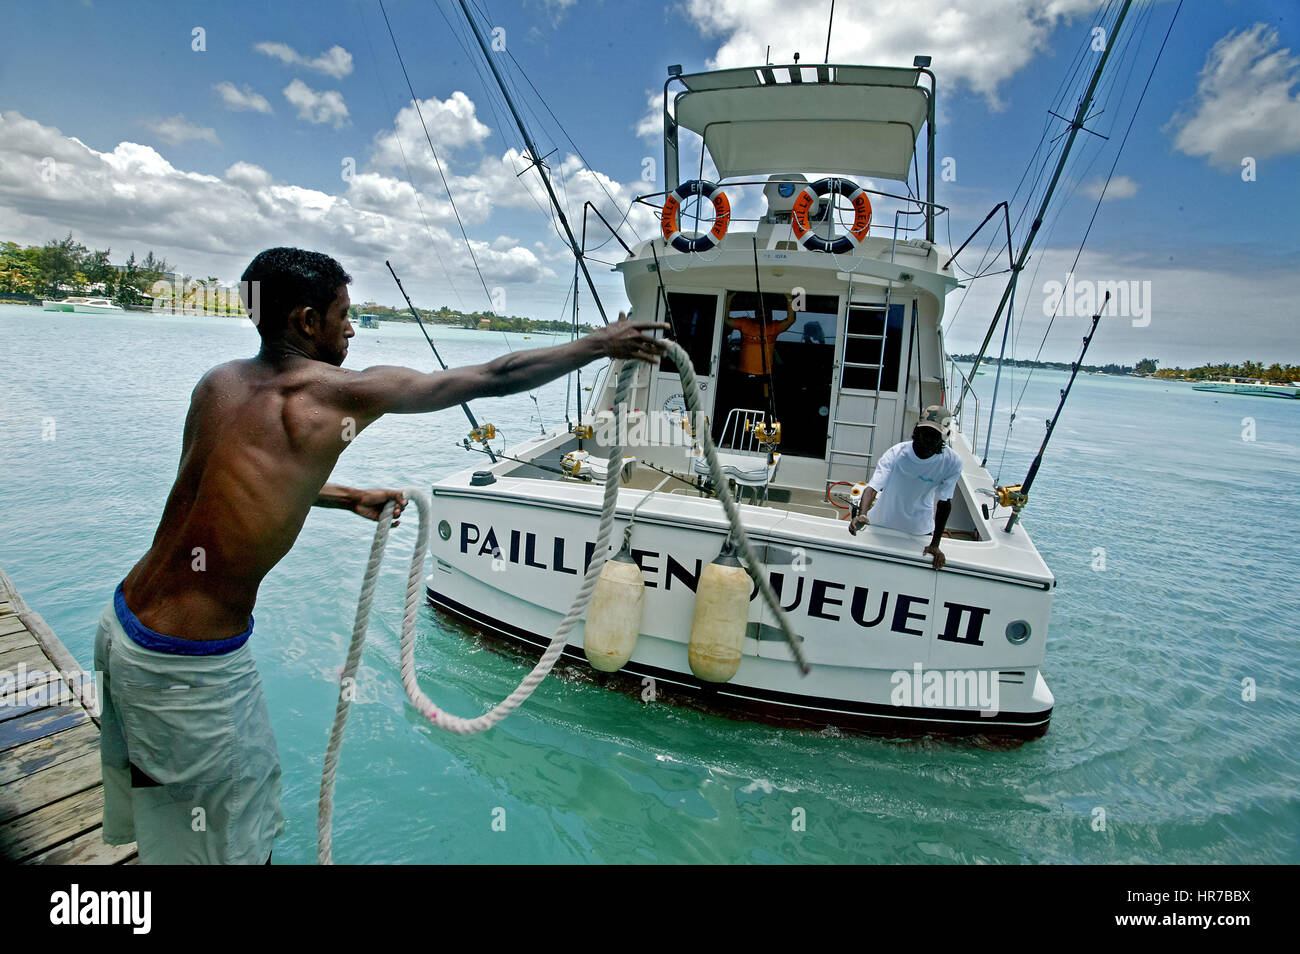 Mauritius, Grand Baie, deep sea fishing, bathing, blue water, boat, local boy helping at the pier for the deep sea - Stock Image